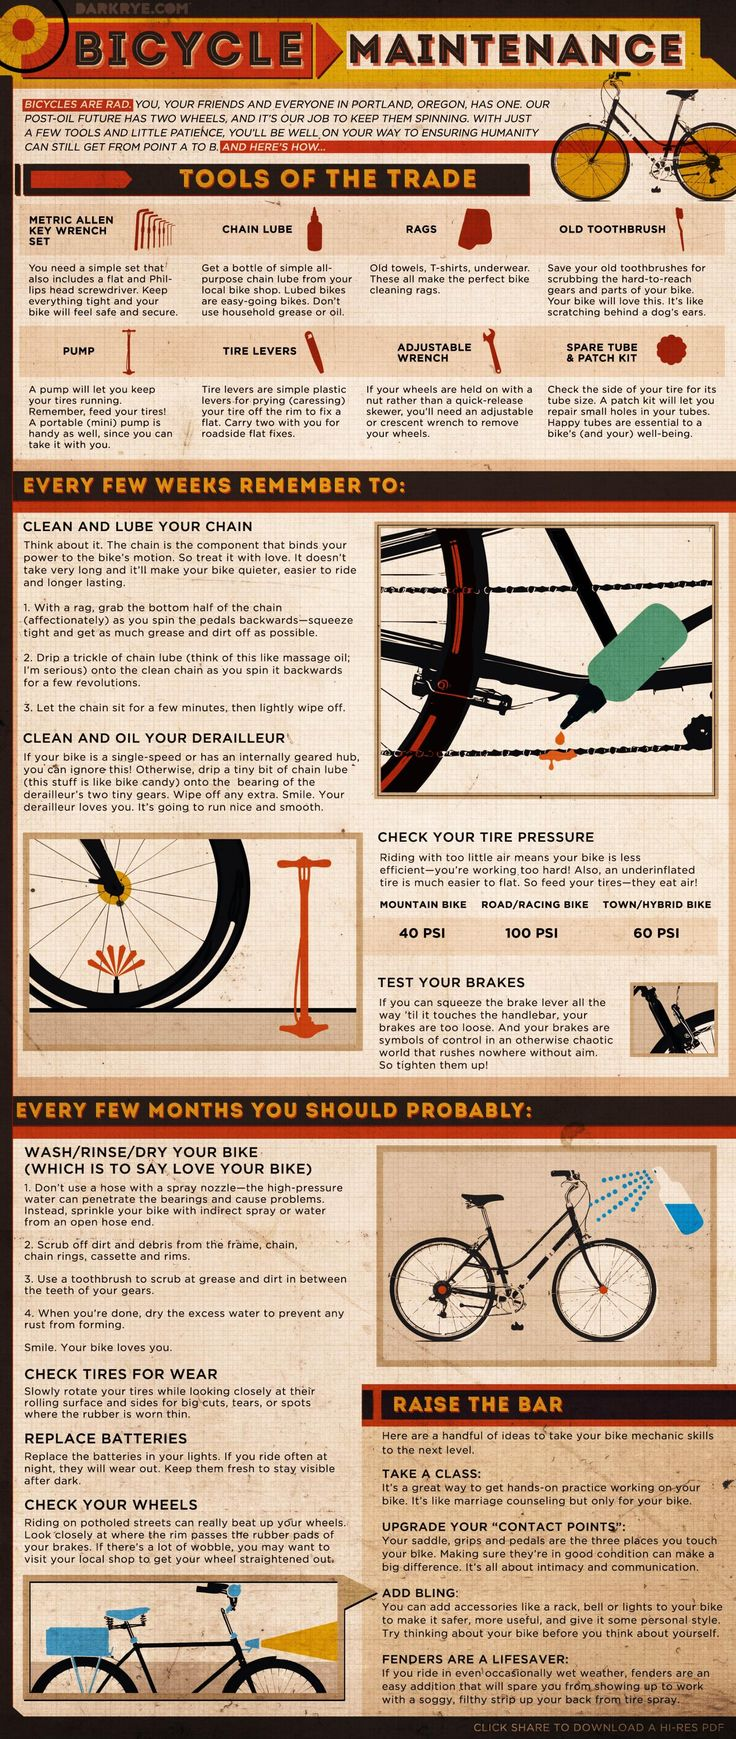 How to take care of your bike.